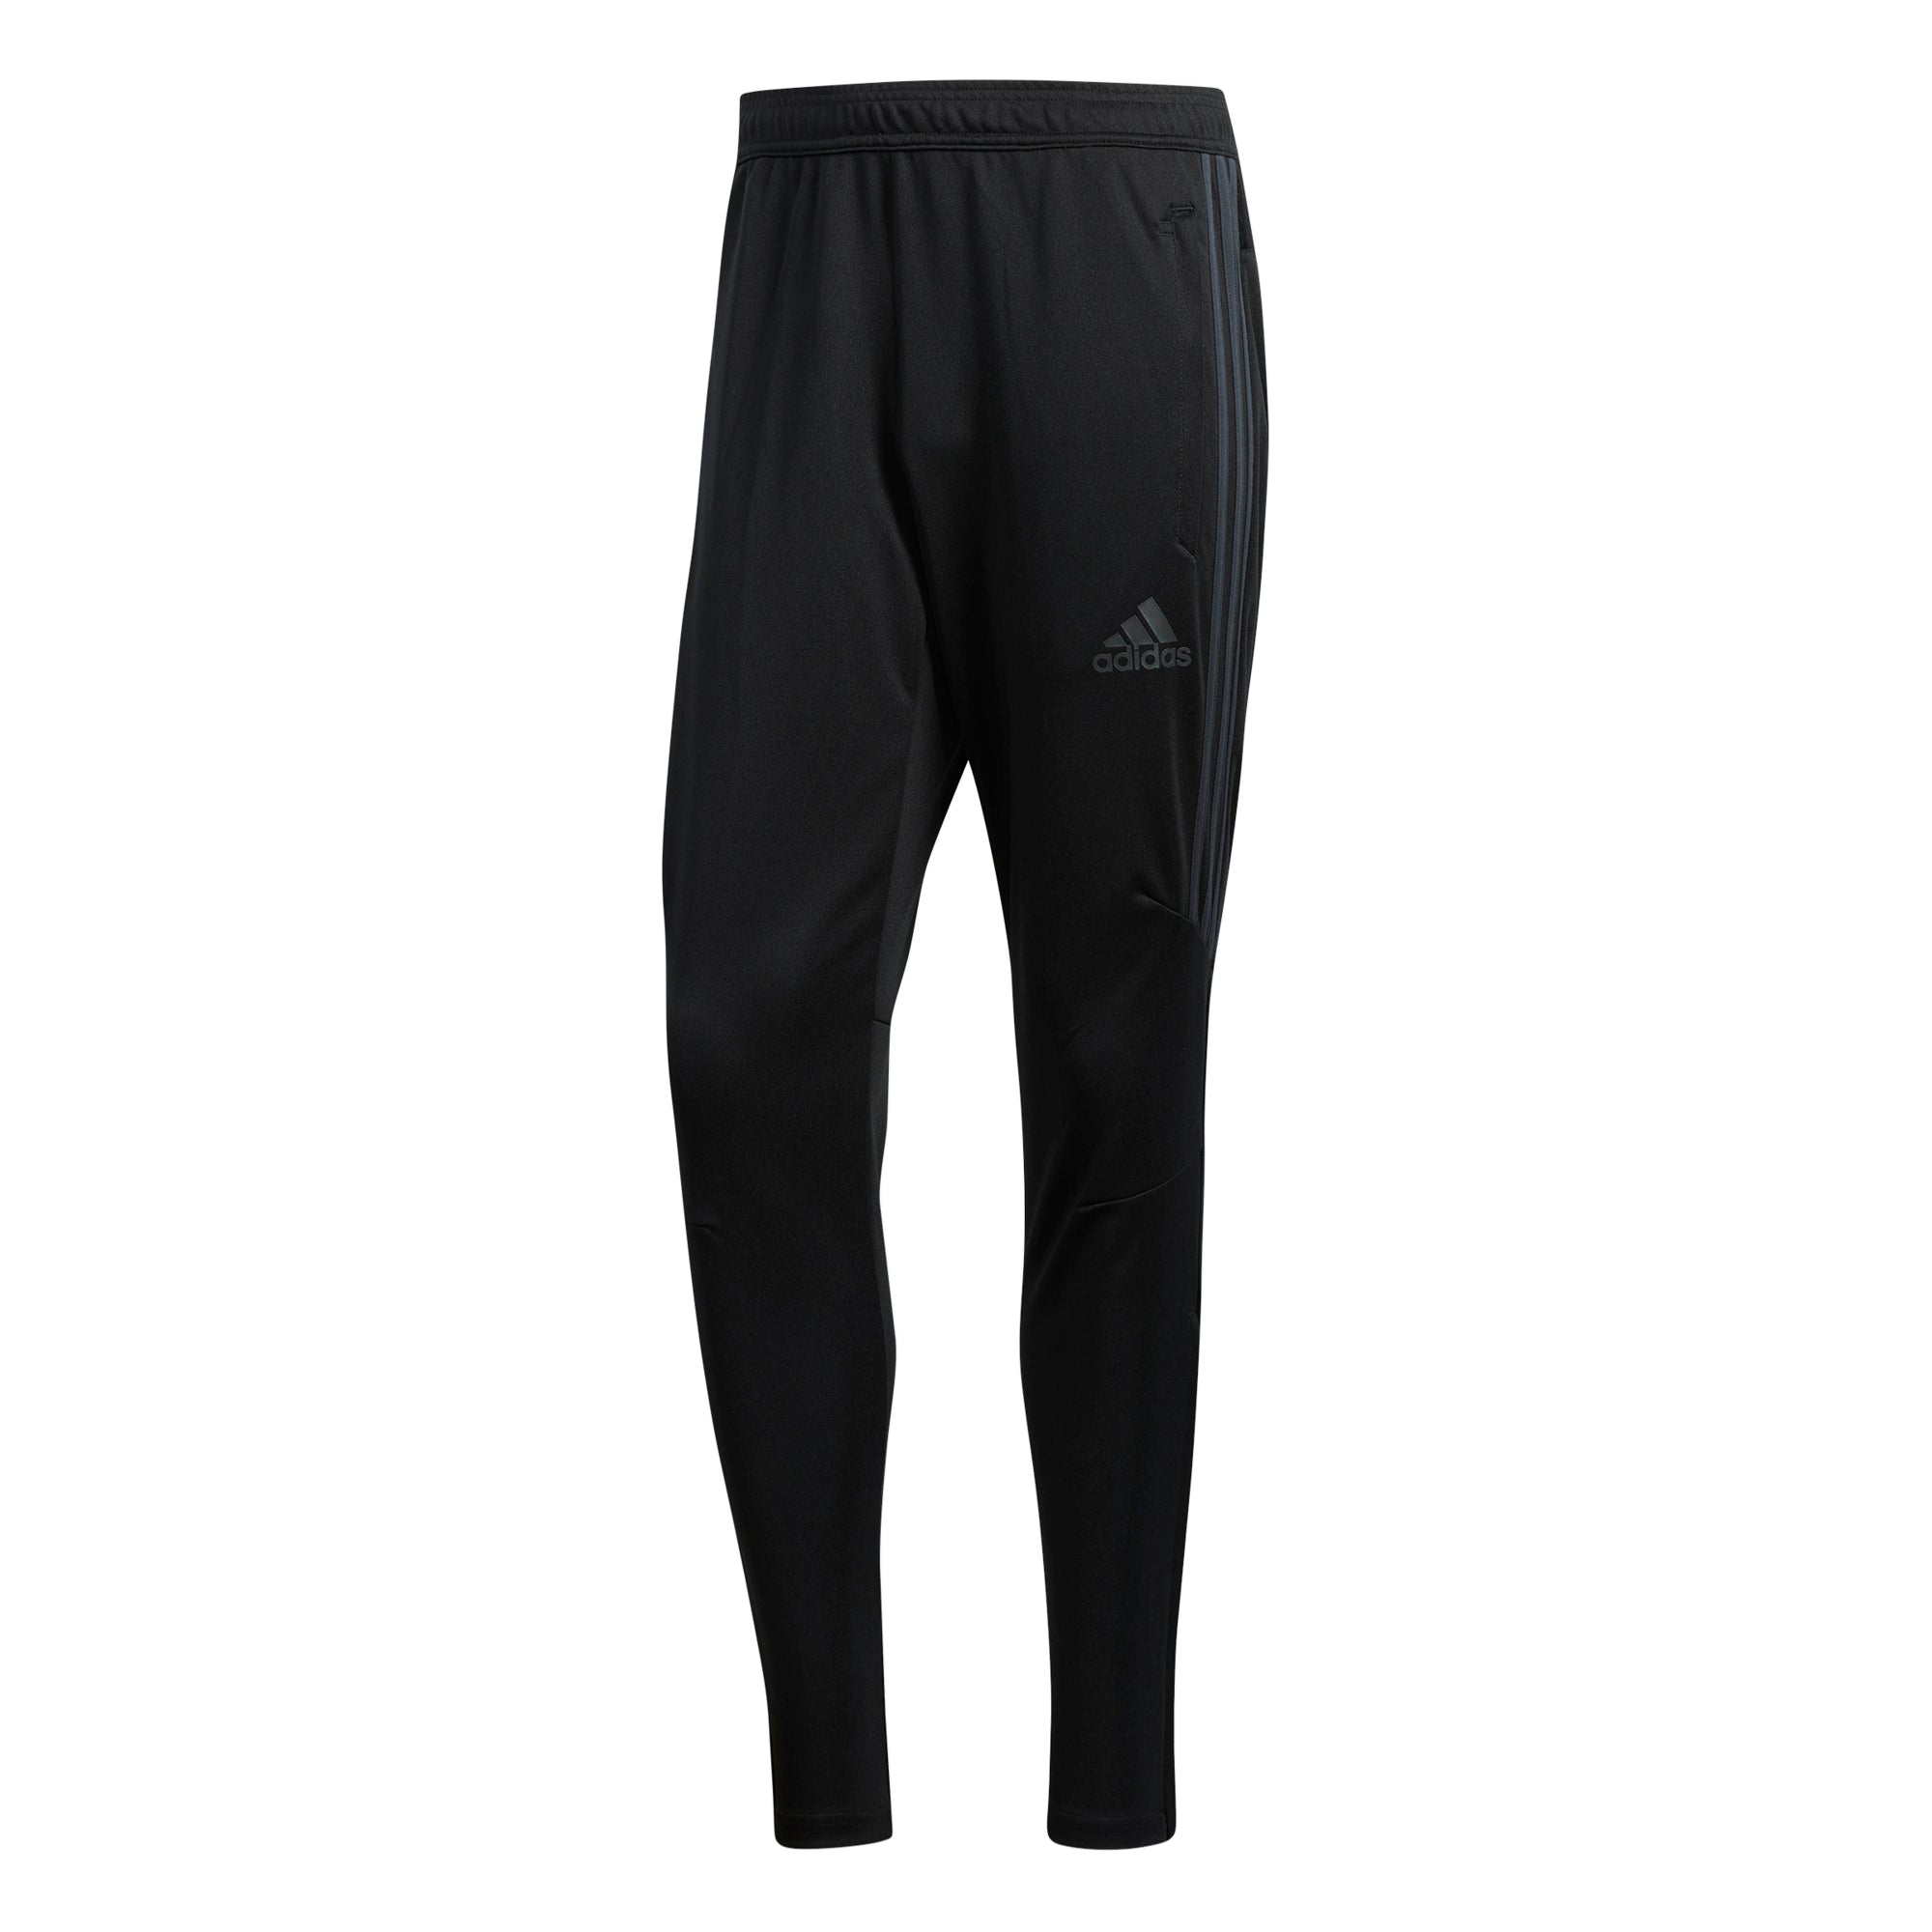 Adidas Tiro Training pants - Adults - All black